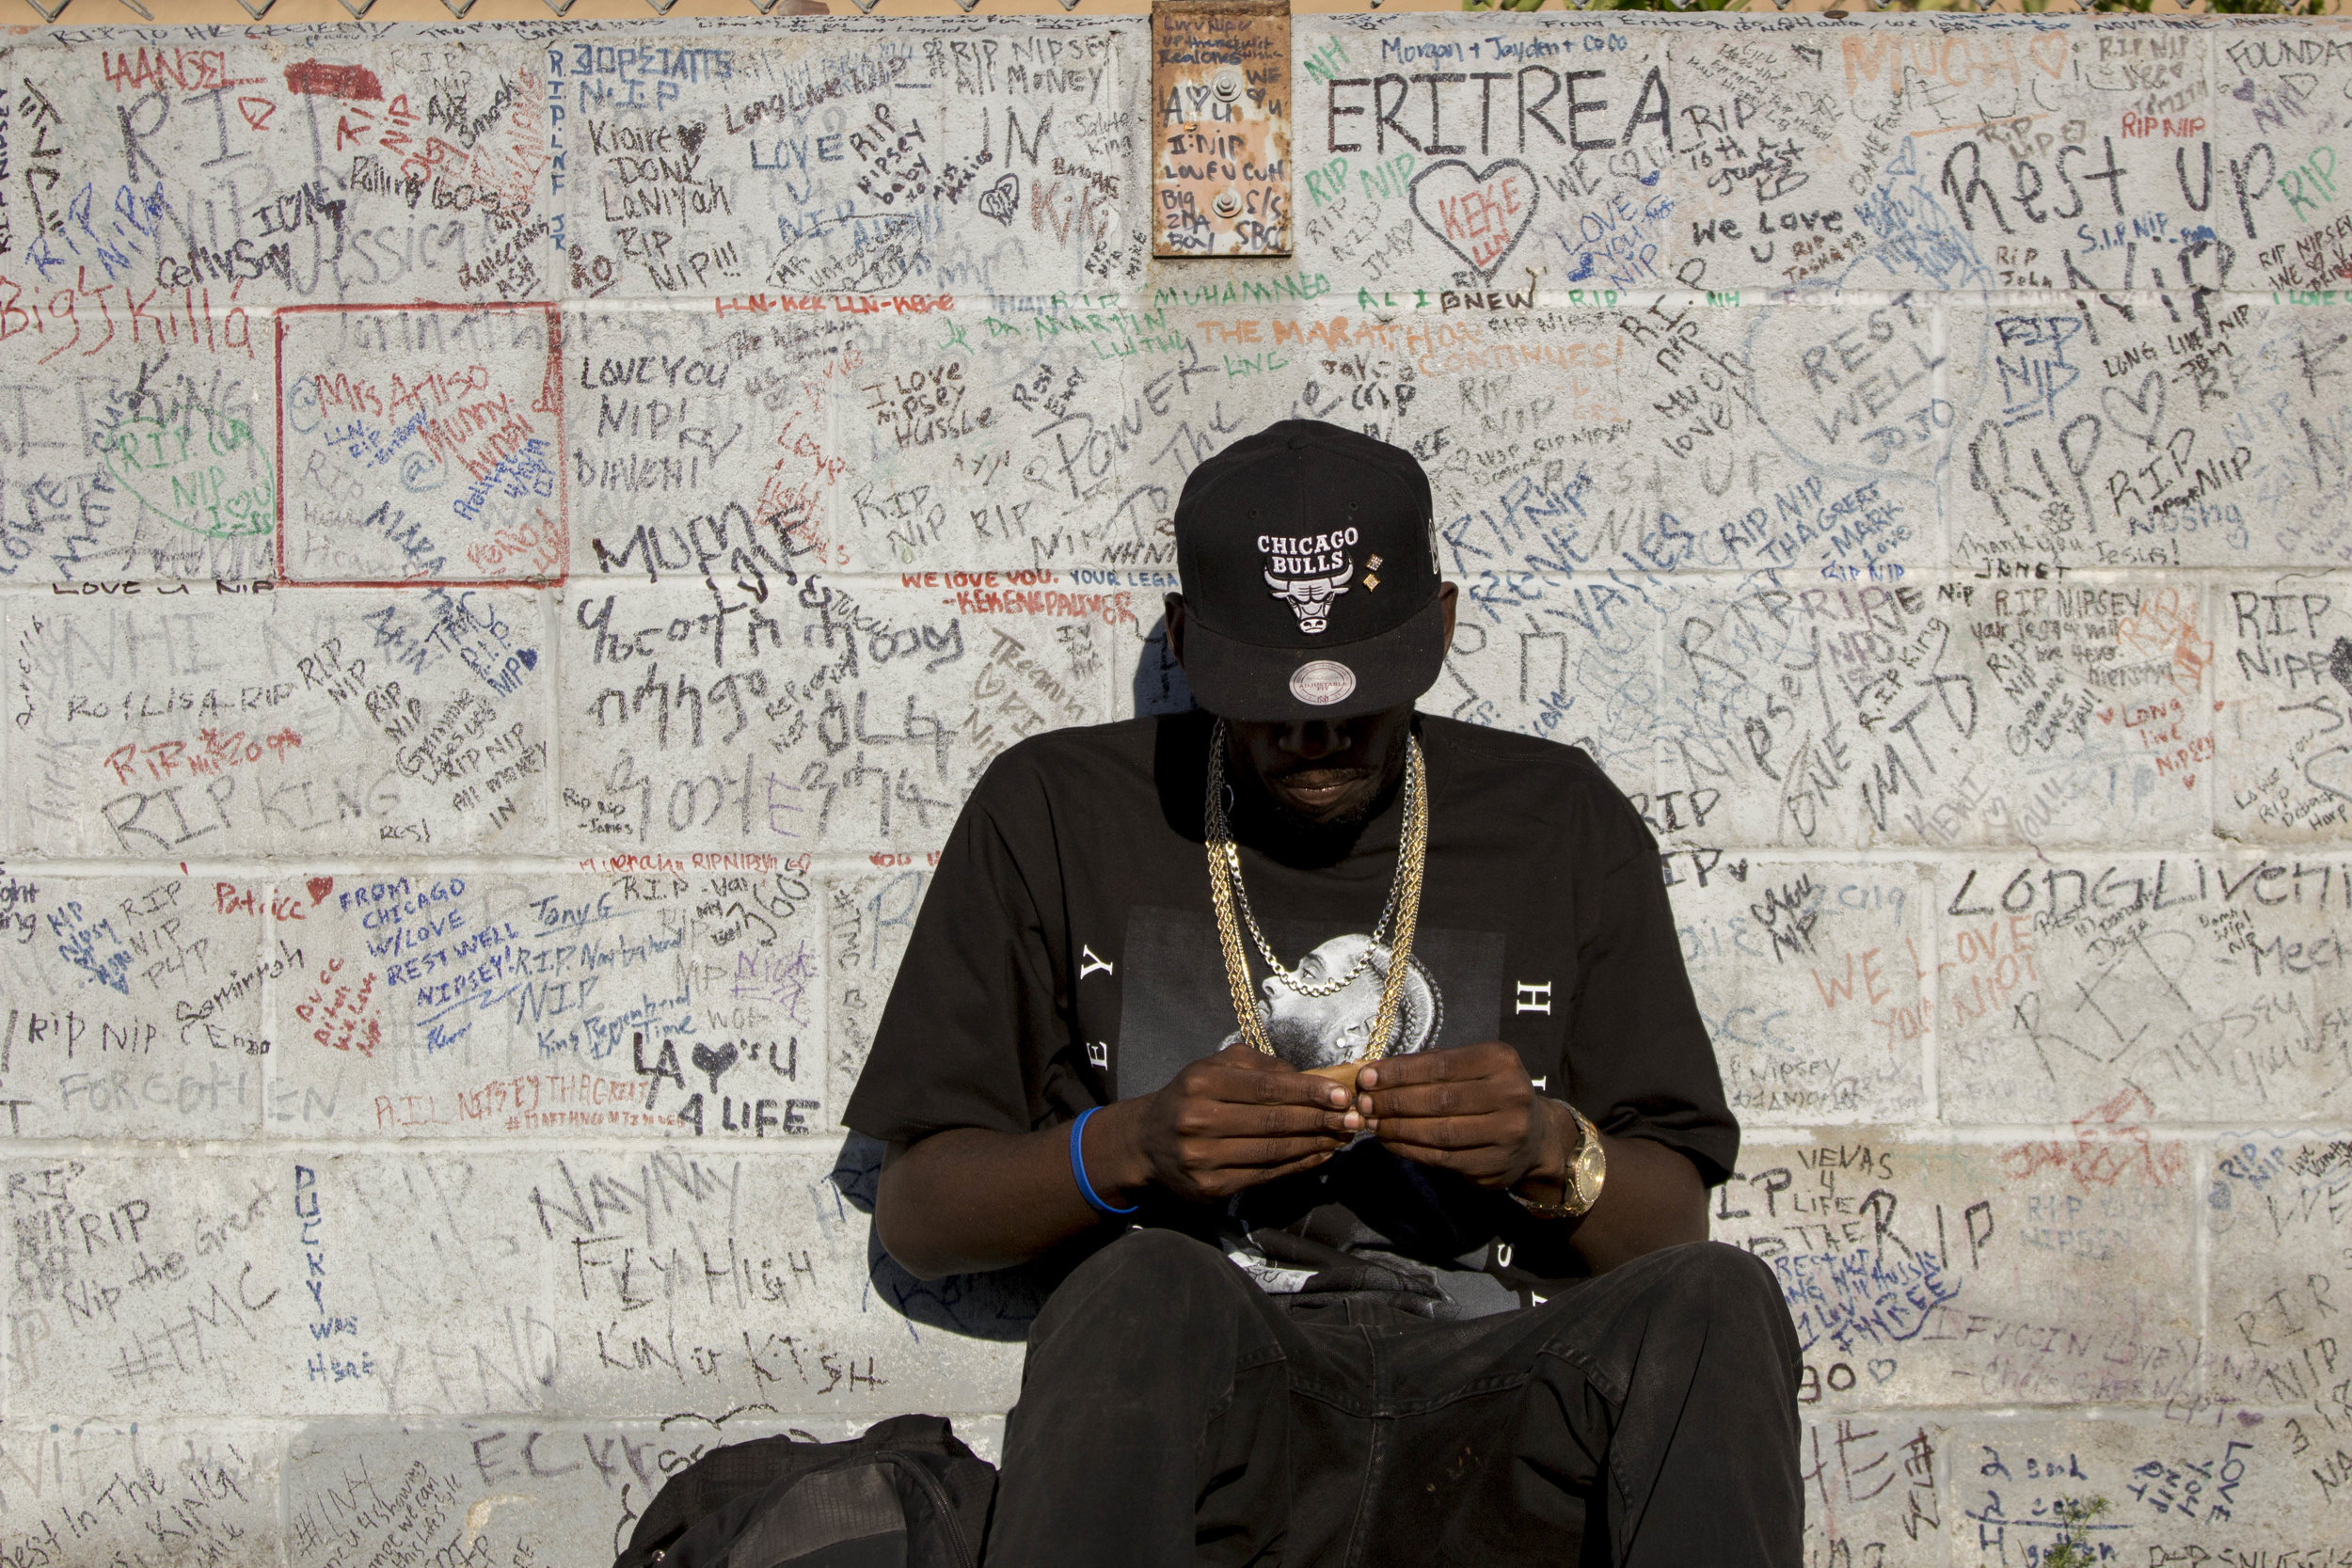 A fan sits near the wall filled with hand written messages commemorating the life of Nipsey Hussle at the makeshift memorial near The Marathon Clothing store on Slauson Avenue in Los Angeles, California on Wednesday, April 10, 2019. The 33-year-old rapper was murdered on March 31 in front of The Marathon Clothing store which he owned. (Jose Lopez)